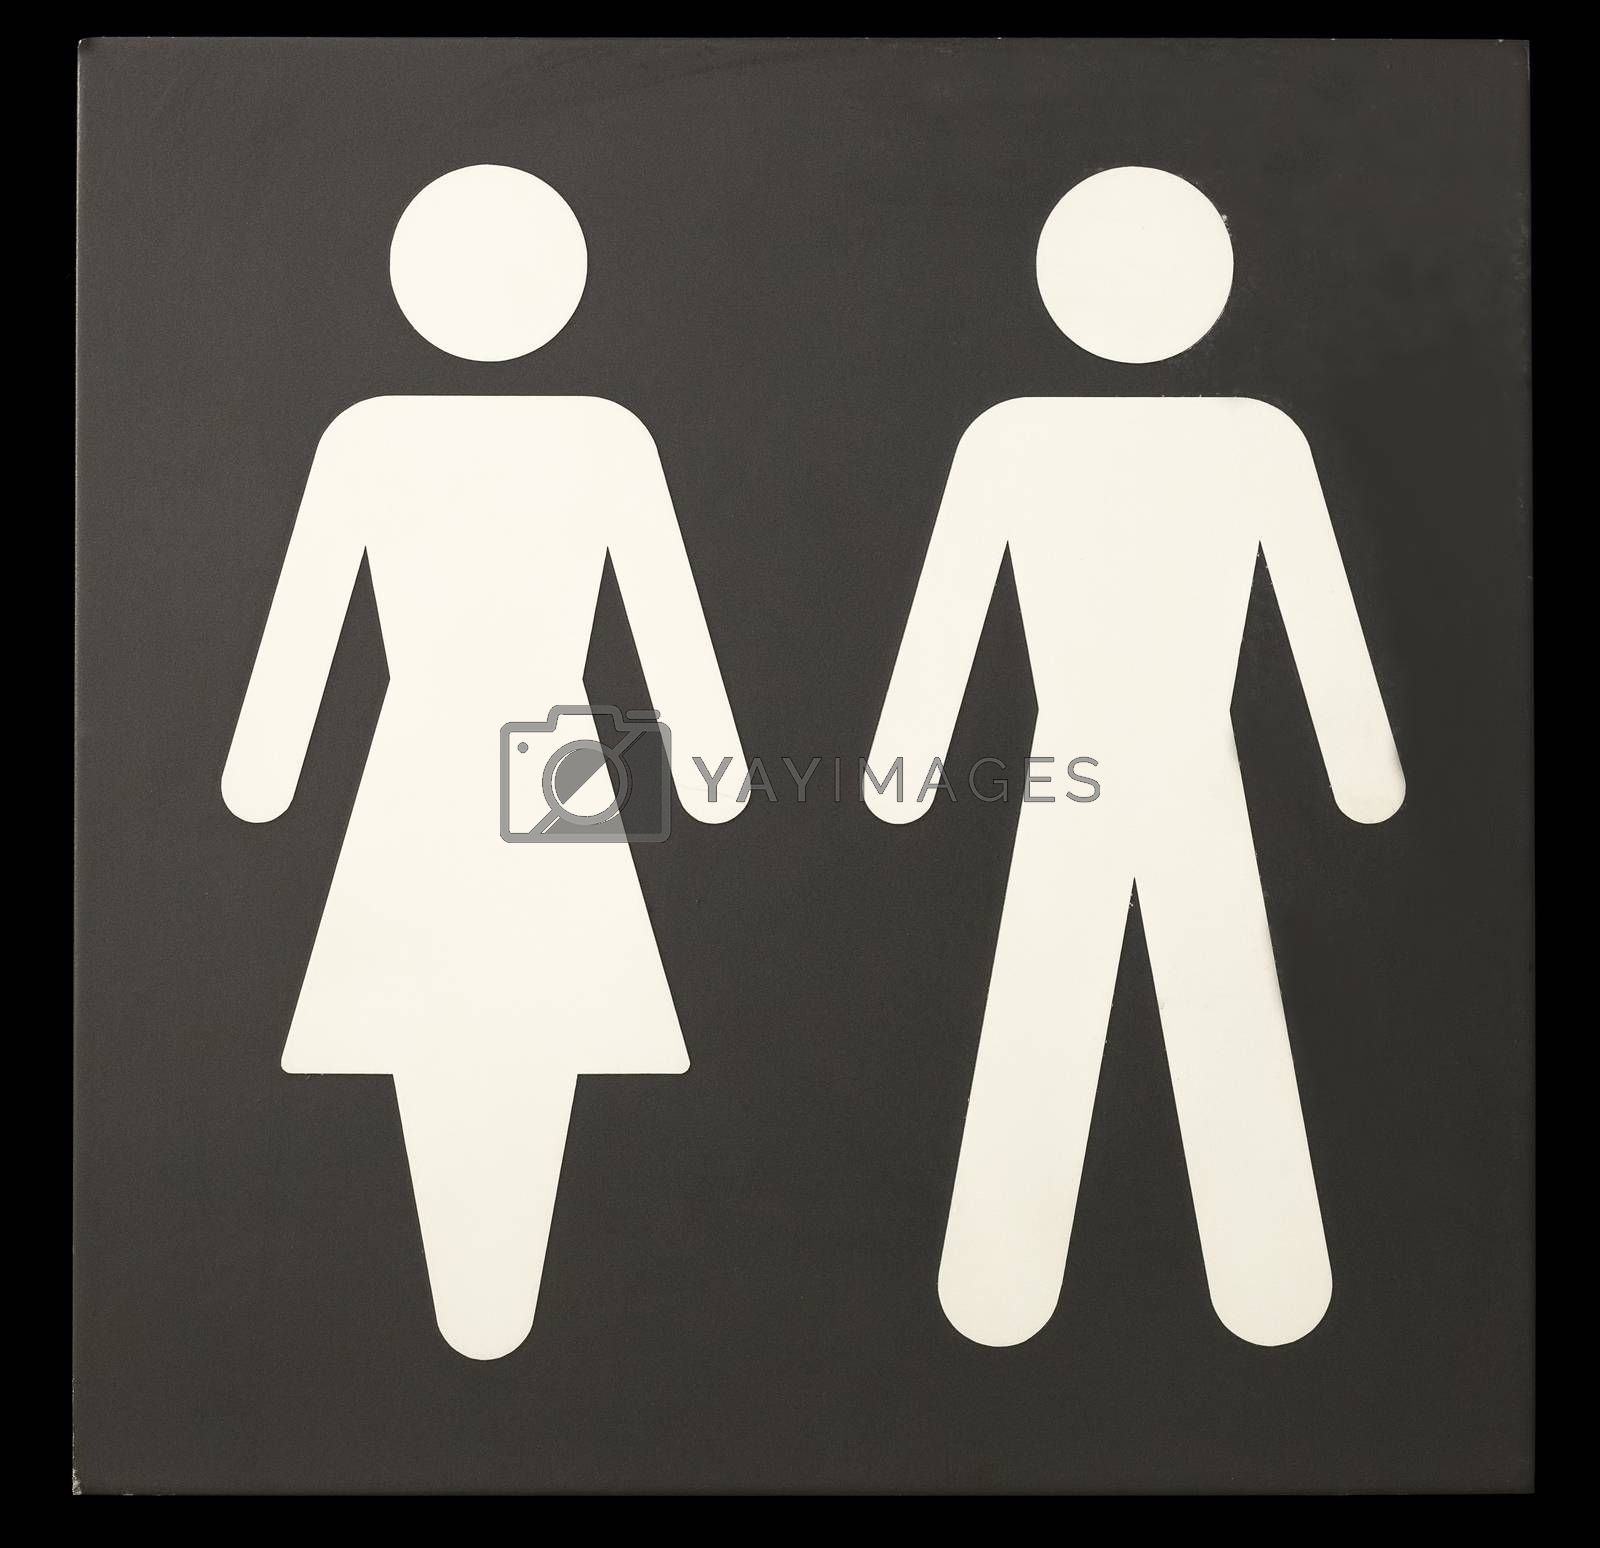 Man and Woman on Sign with black background.